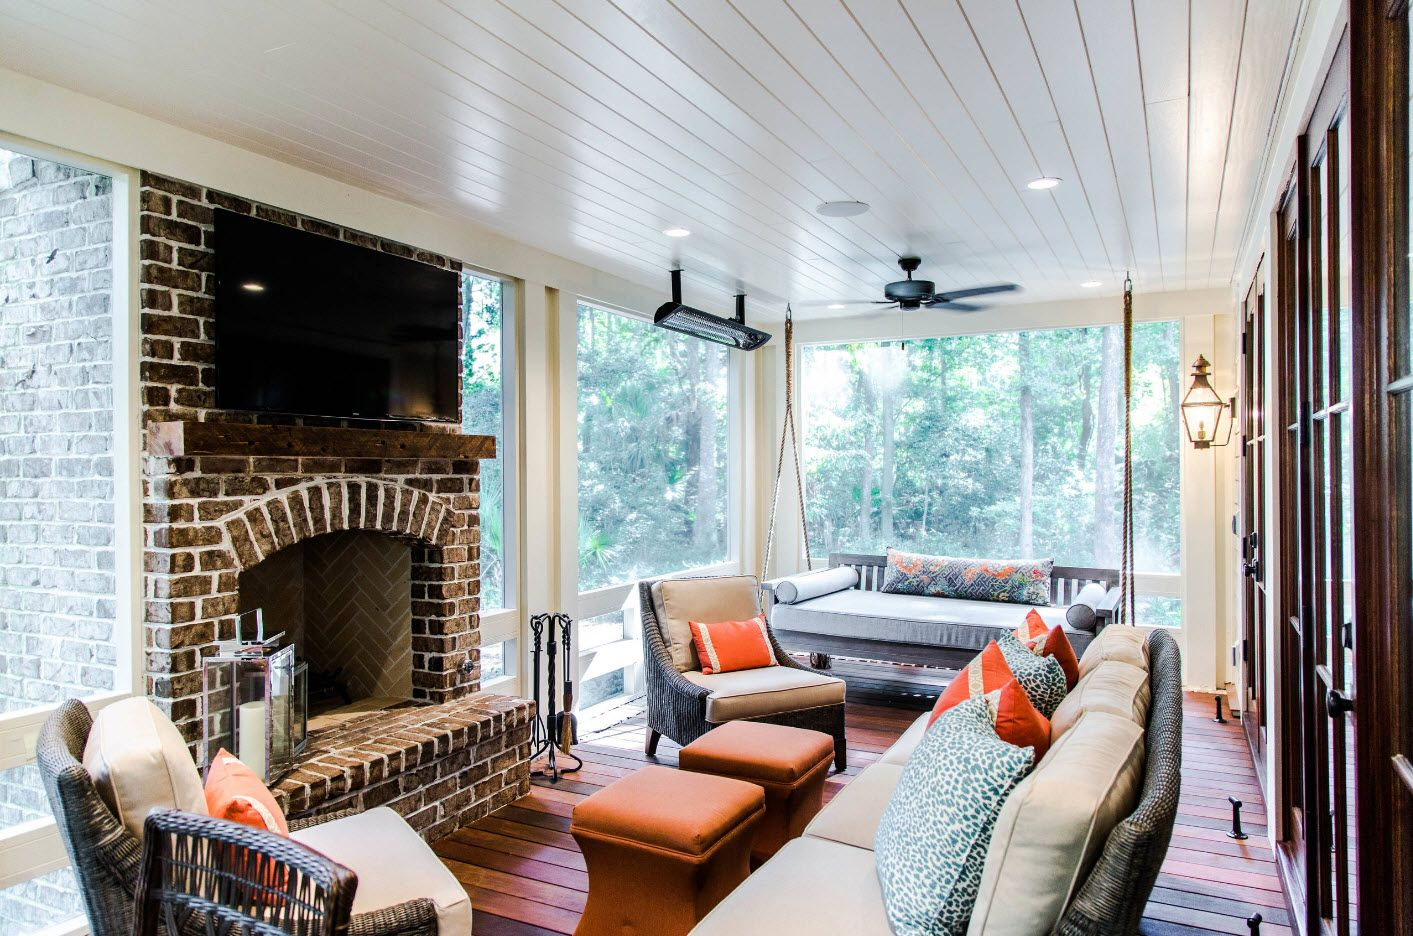 White design of the semi-closed porch area with real fireplace with chimney and furniture to take parties